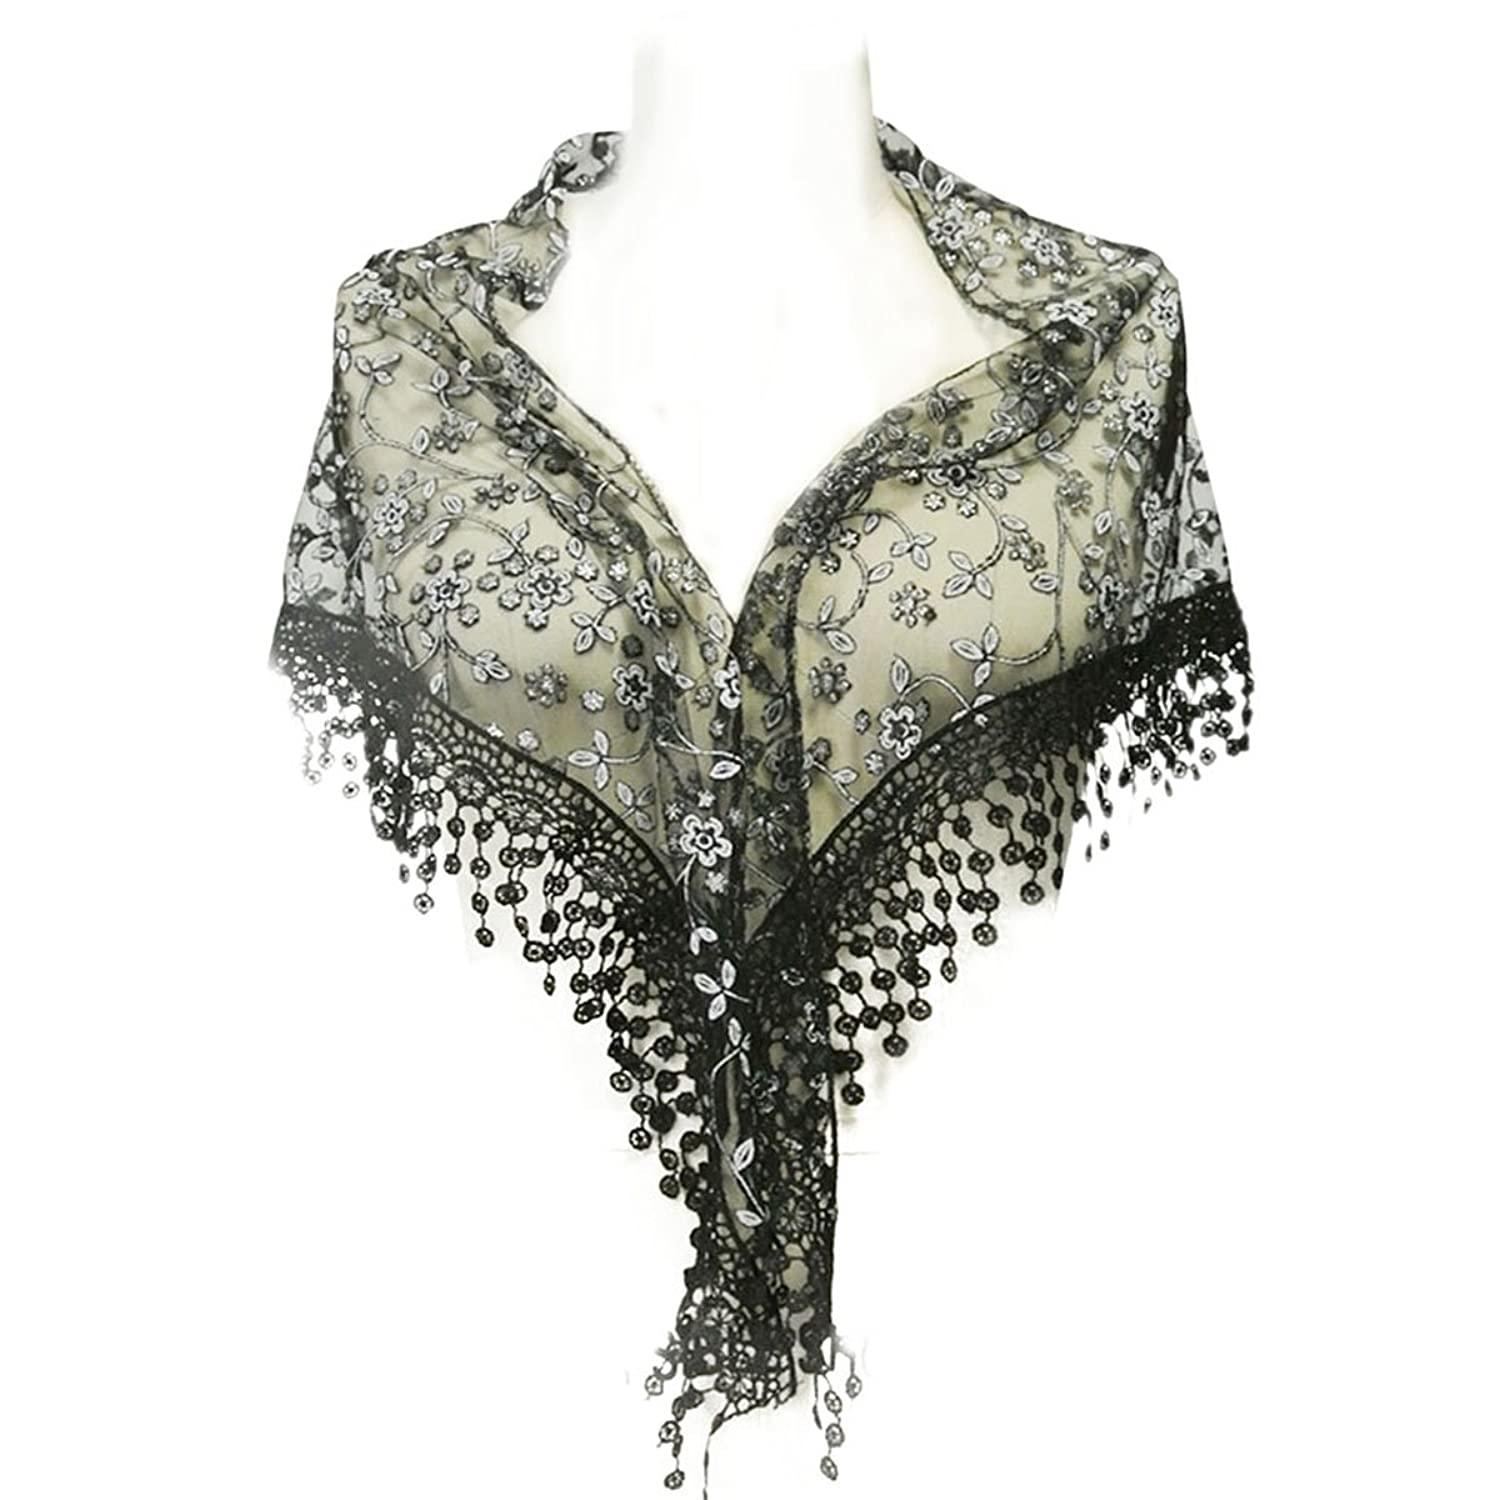 Shawls & Wraps | Vintage Lace & Fur Evening Scarves Wrapables Embroidered Floral Lace Triangle Scarf $10.99 AT vintagedancer.com